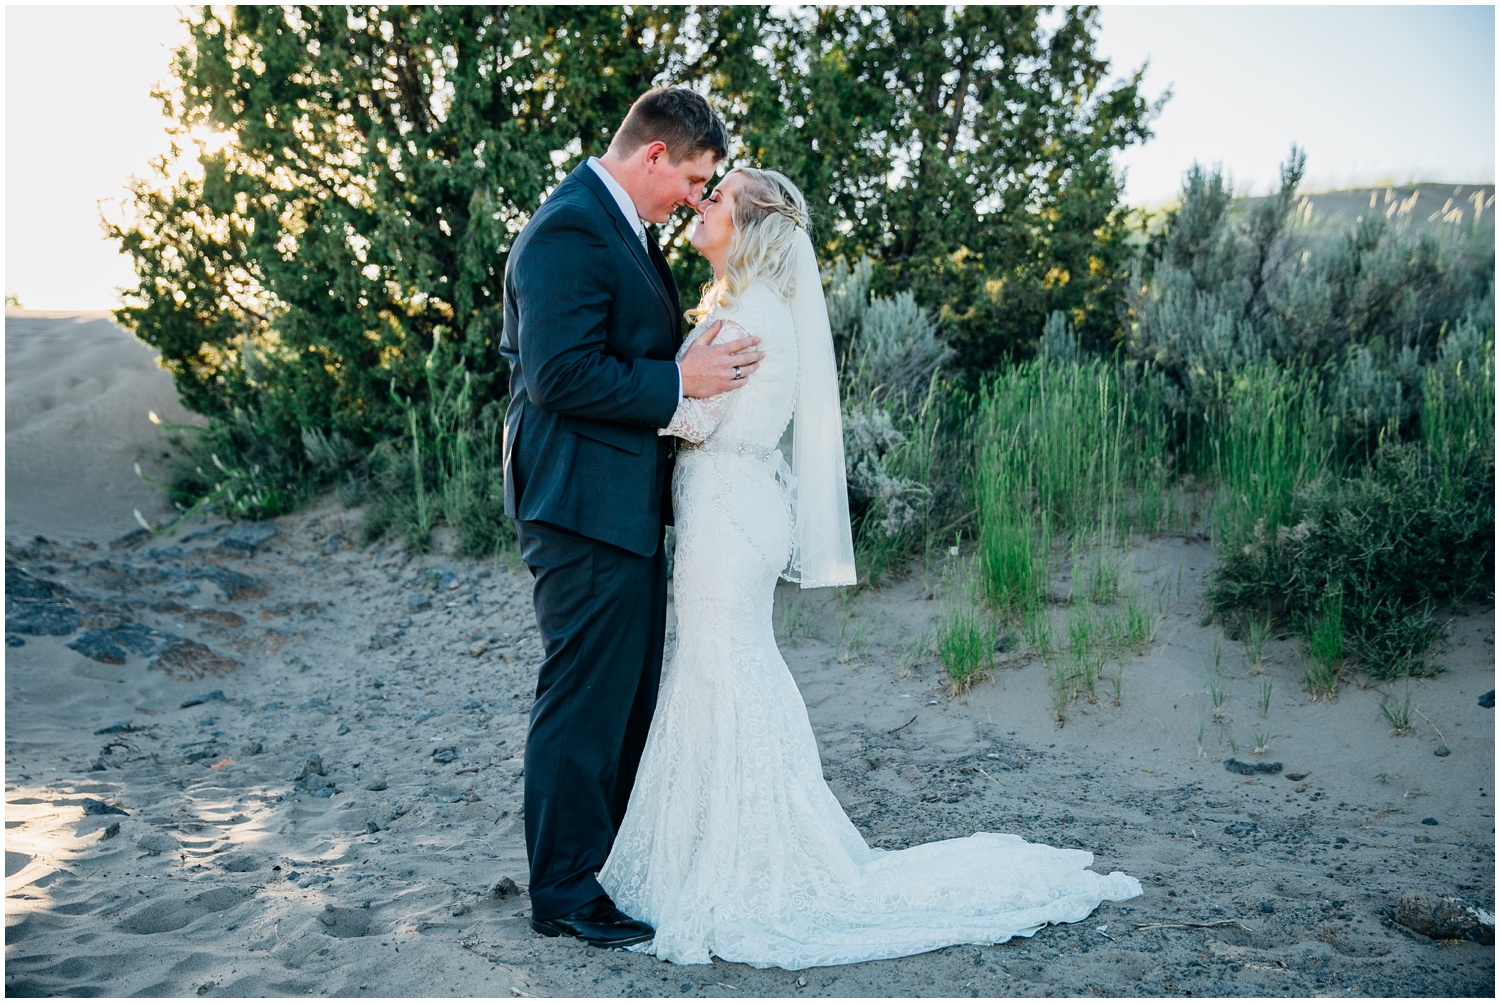 saint-anthony-sand-dunes-bridals-idaho-engagements-colorado-wyoming-wedding-photographer_0707.jpg